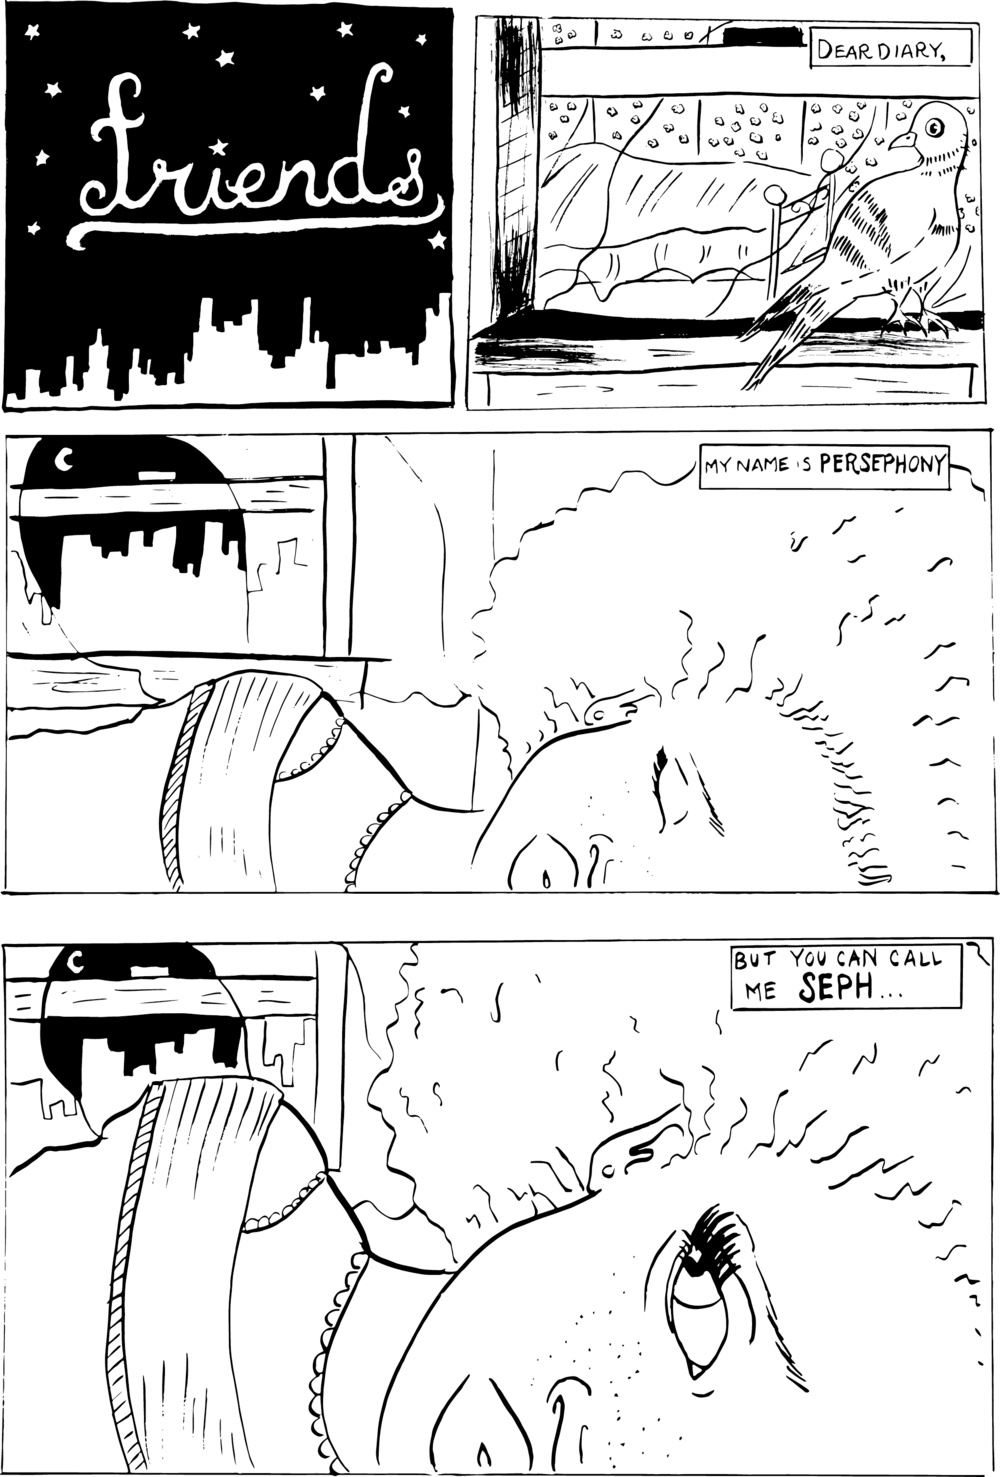 Comic Book + Layout for Pitch